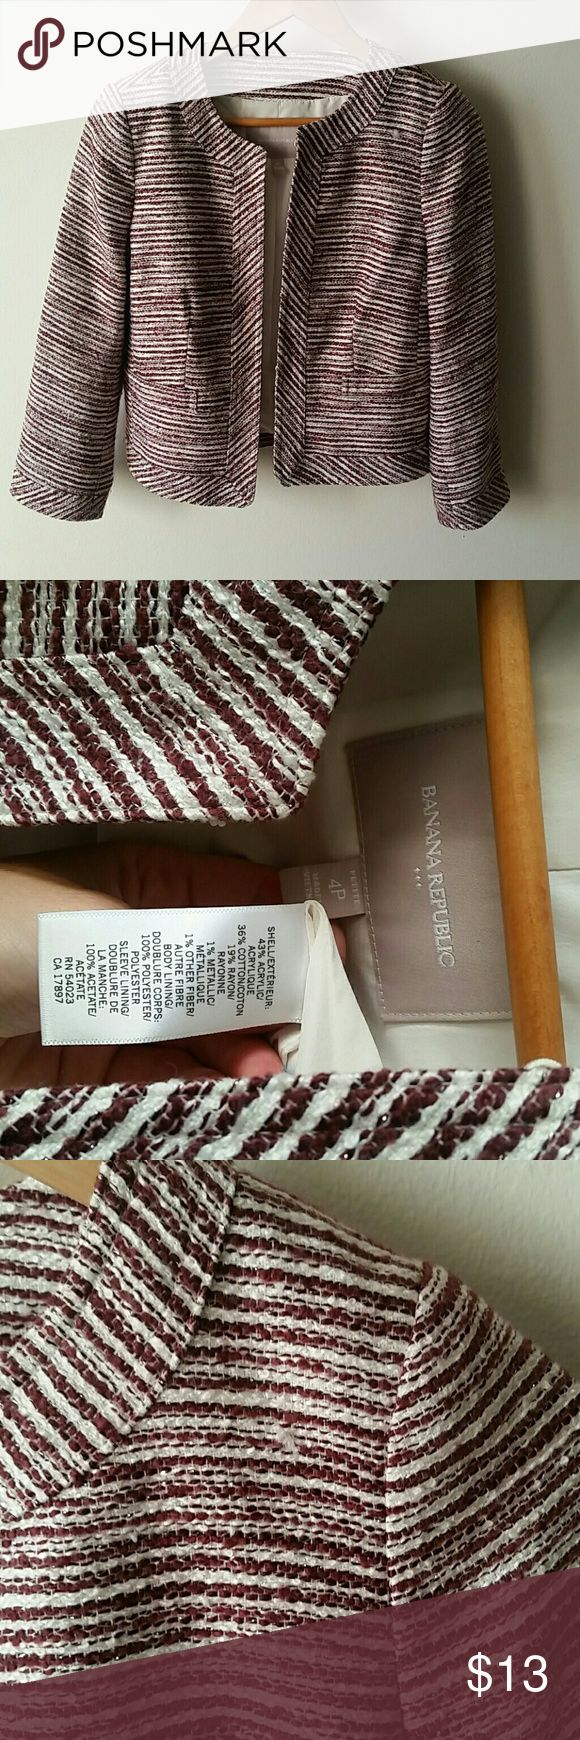 Banana Republic jacket Maroon and white, in excellent condition. I bought this and wore it once before deciding the sleeves looked too short (it is size 4, petite) Minor pull near front left of jacket (shown in last picture) Banana Republic Jackets & Coats Blazers